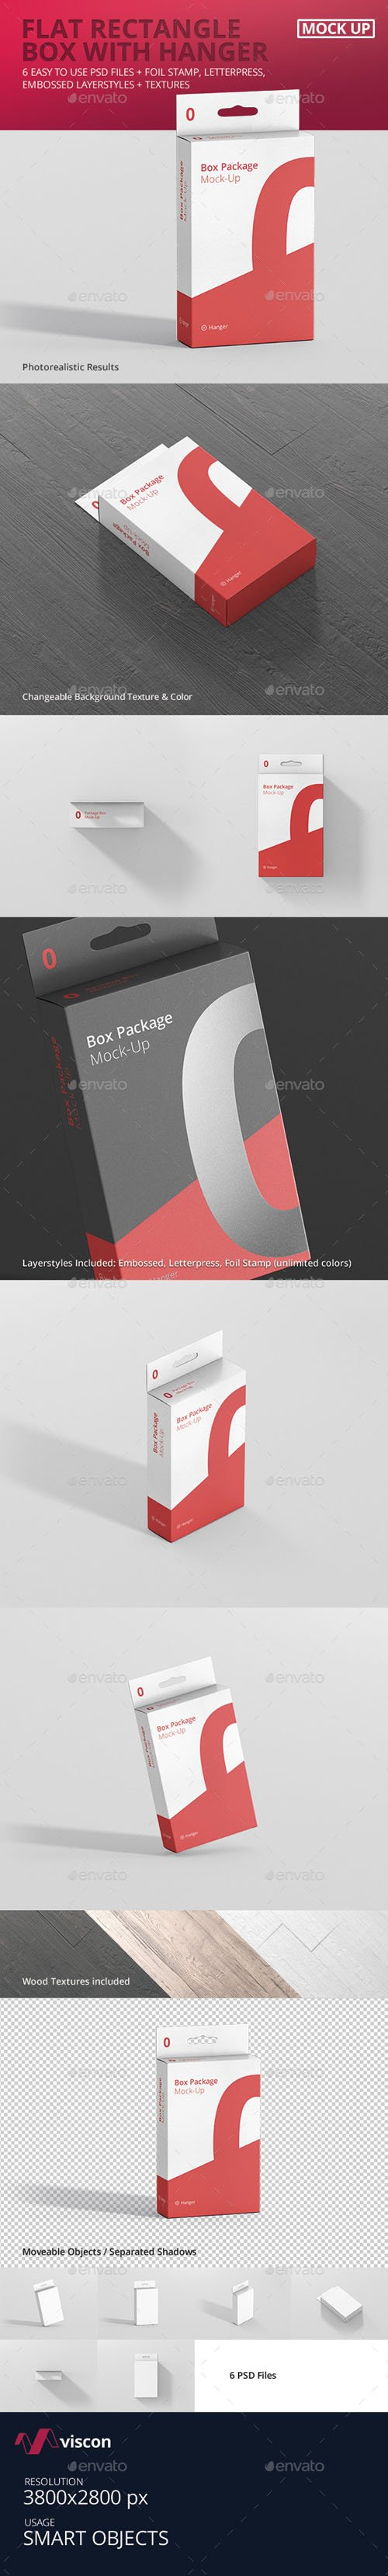 Package Box Mock-Up - Flat Rectangle with Hanger 17920401